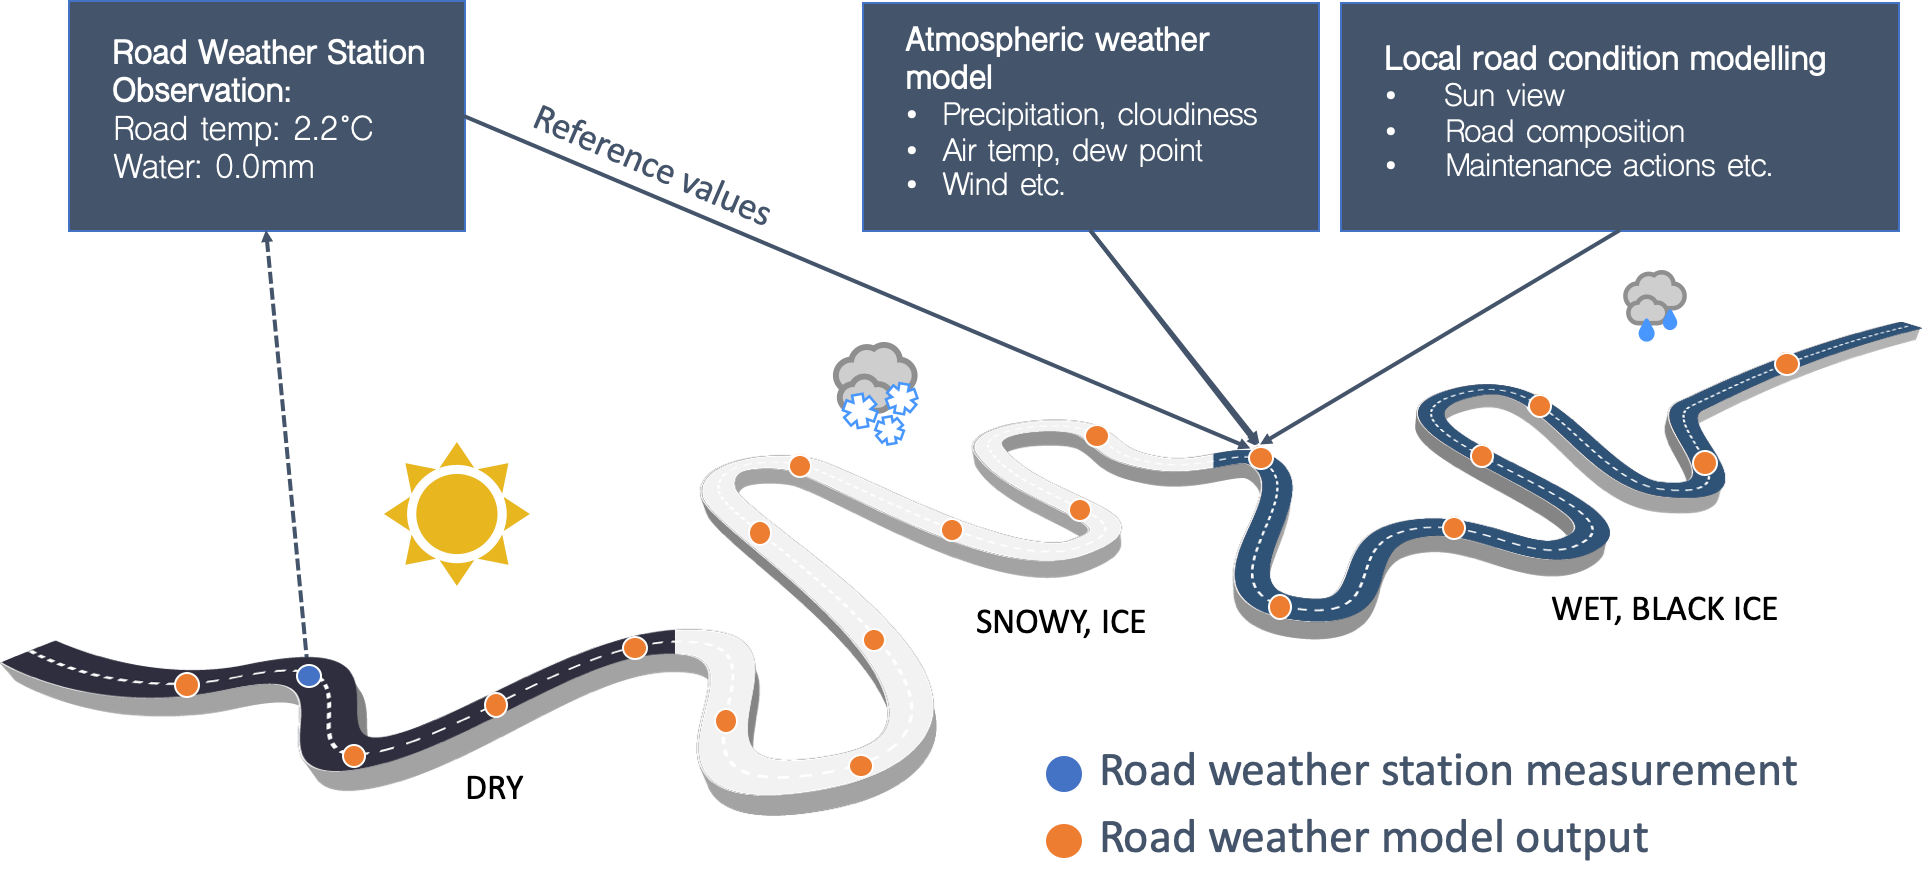 Road weather model